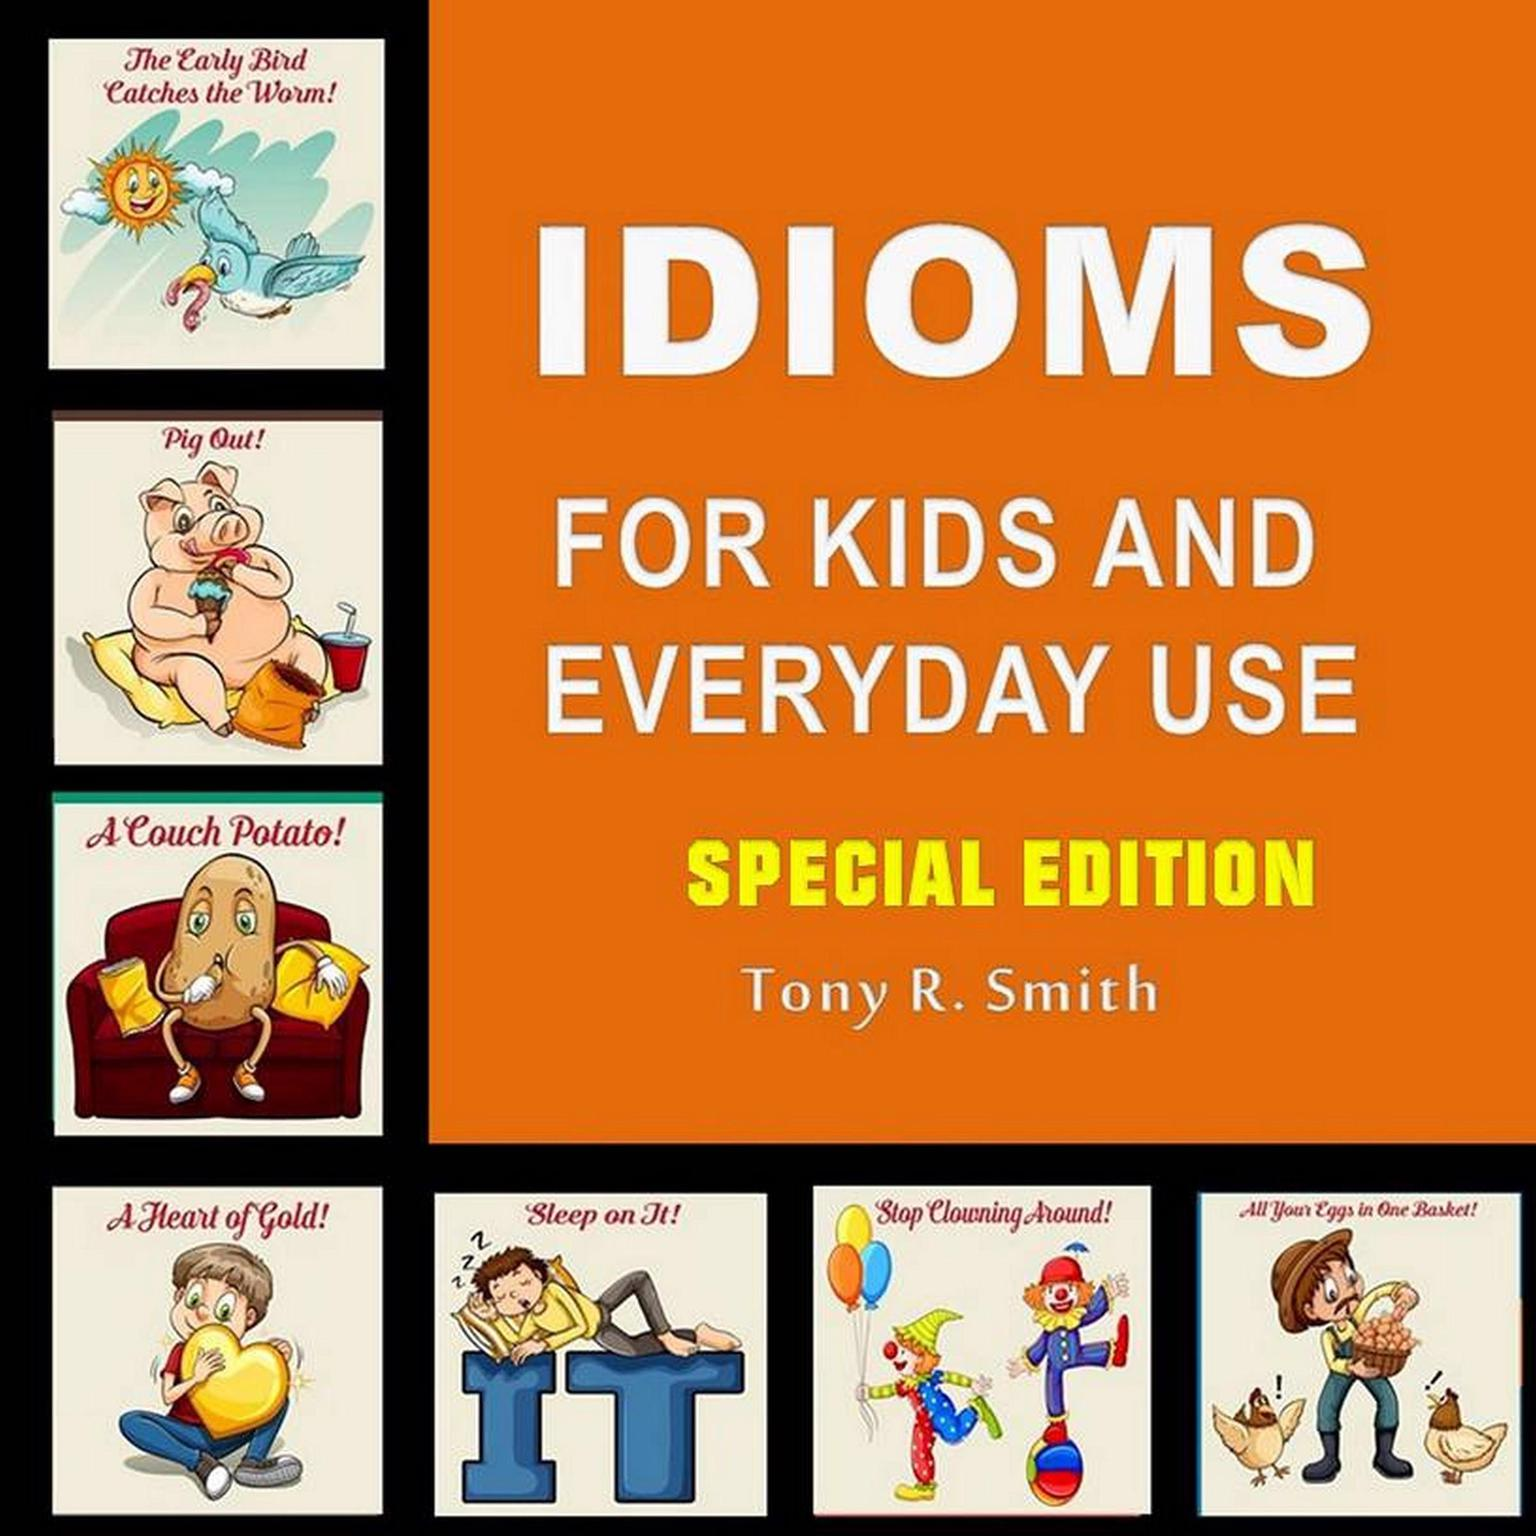 Idioms for Kids and Everyday Use (Special Edition) Audiobook, by Tony R. Smith